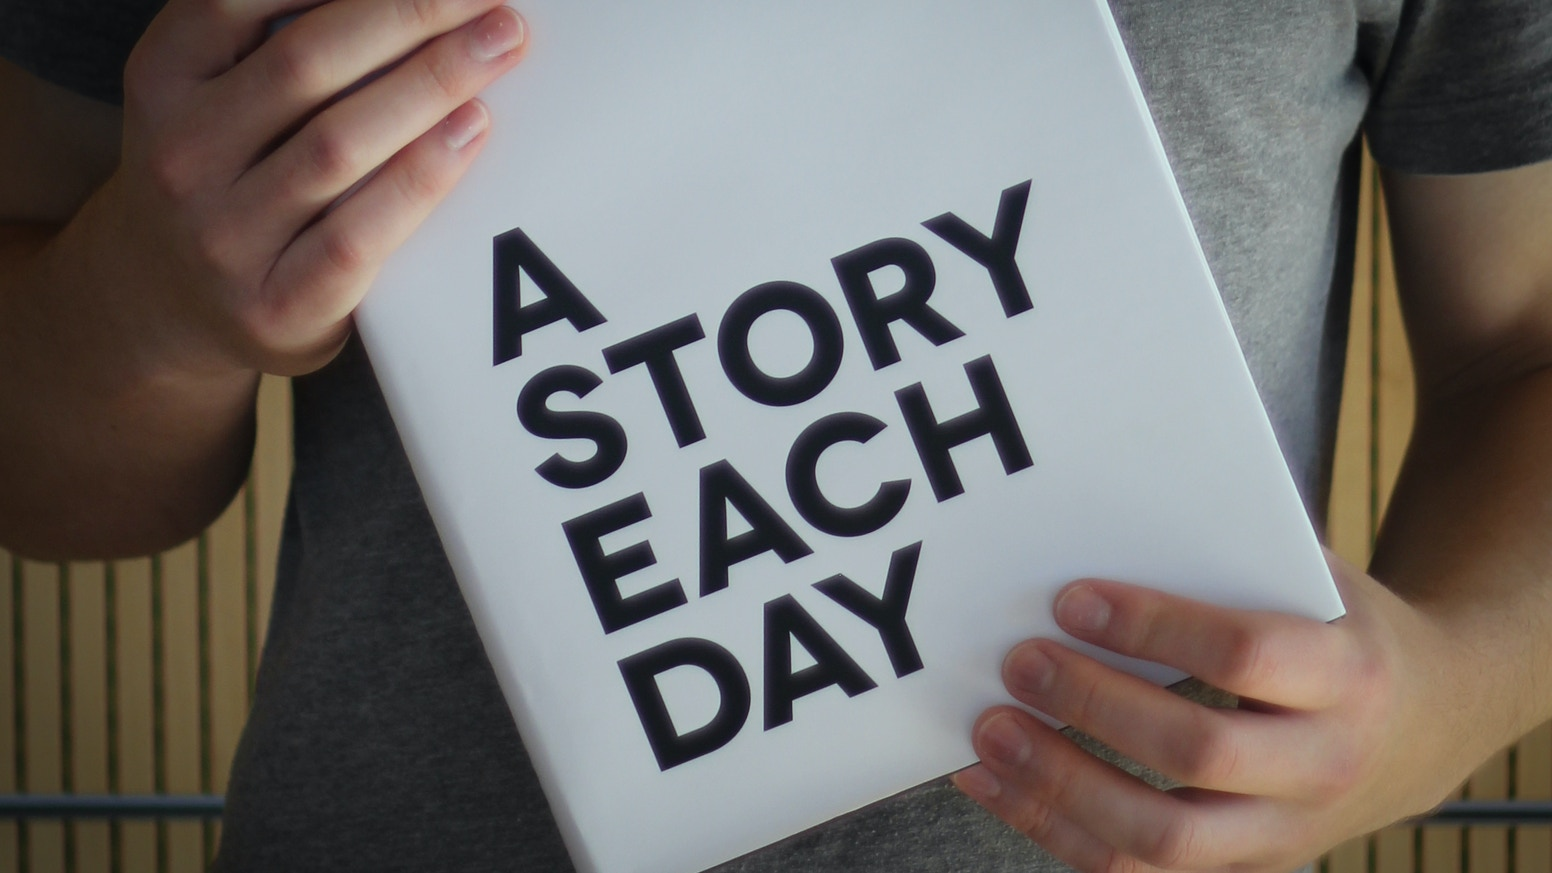 Writer and award-winning director Nicholas Sailer is writing a short story every day for 365 days, throughout the entire year of 2014.